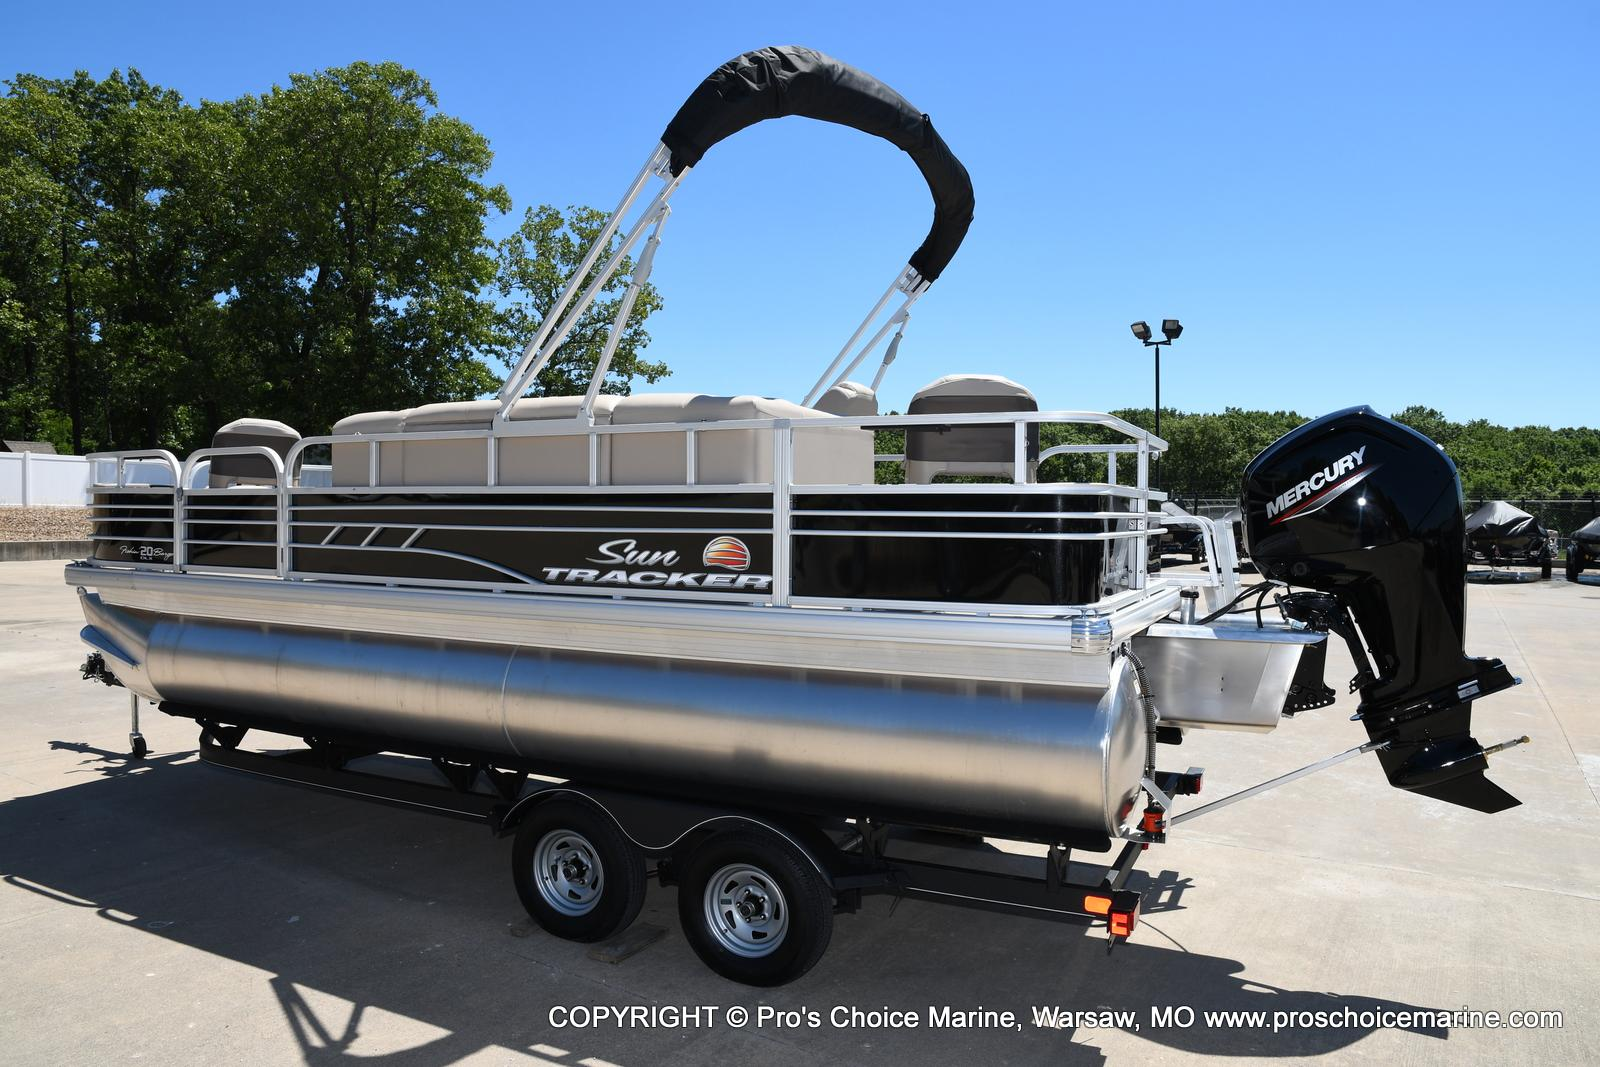 2021 Sun Tracker boat for sale, model of the boat is Fishin' Barge 20 DLX & Image # 9 of 50